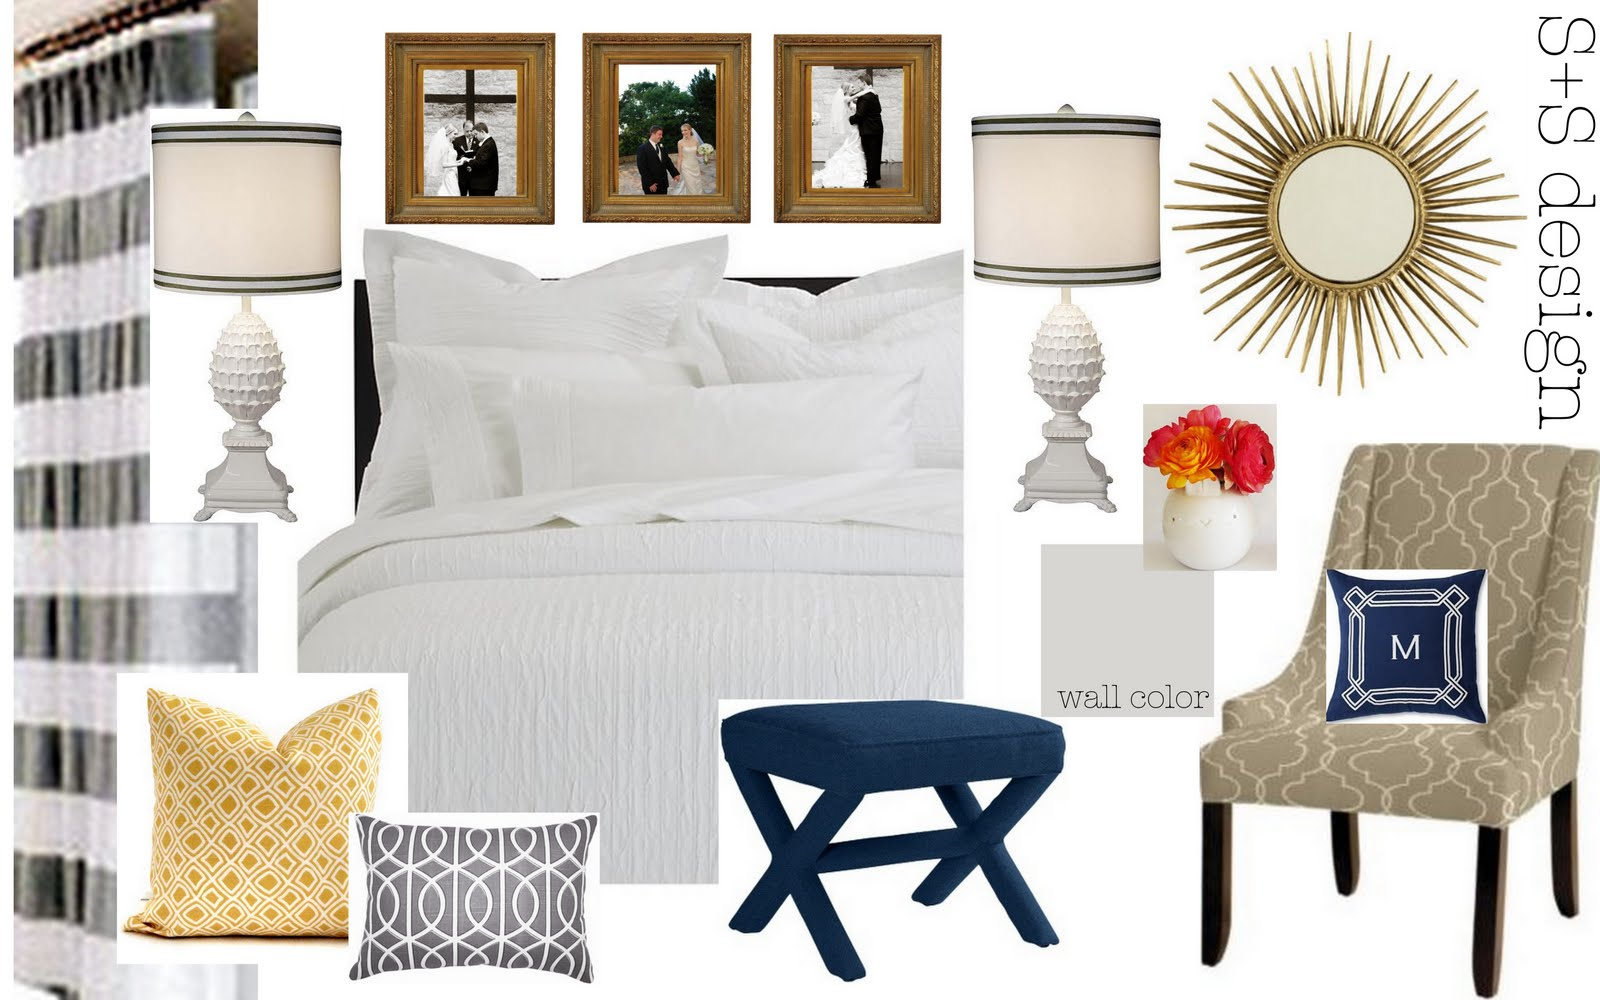 and elm west the gray bishop on see makeover interior s pin jen navy bedroom addict blog